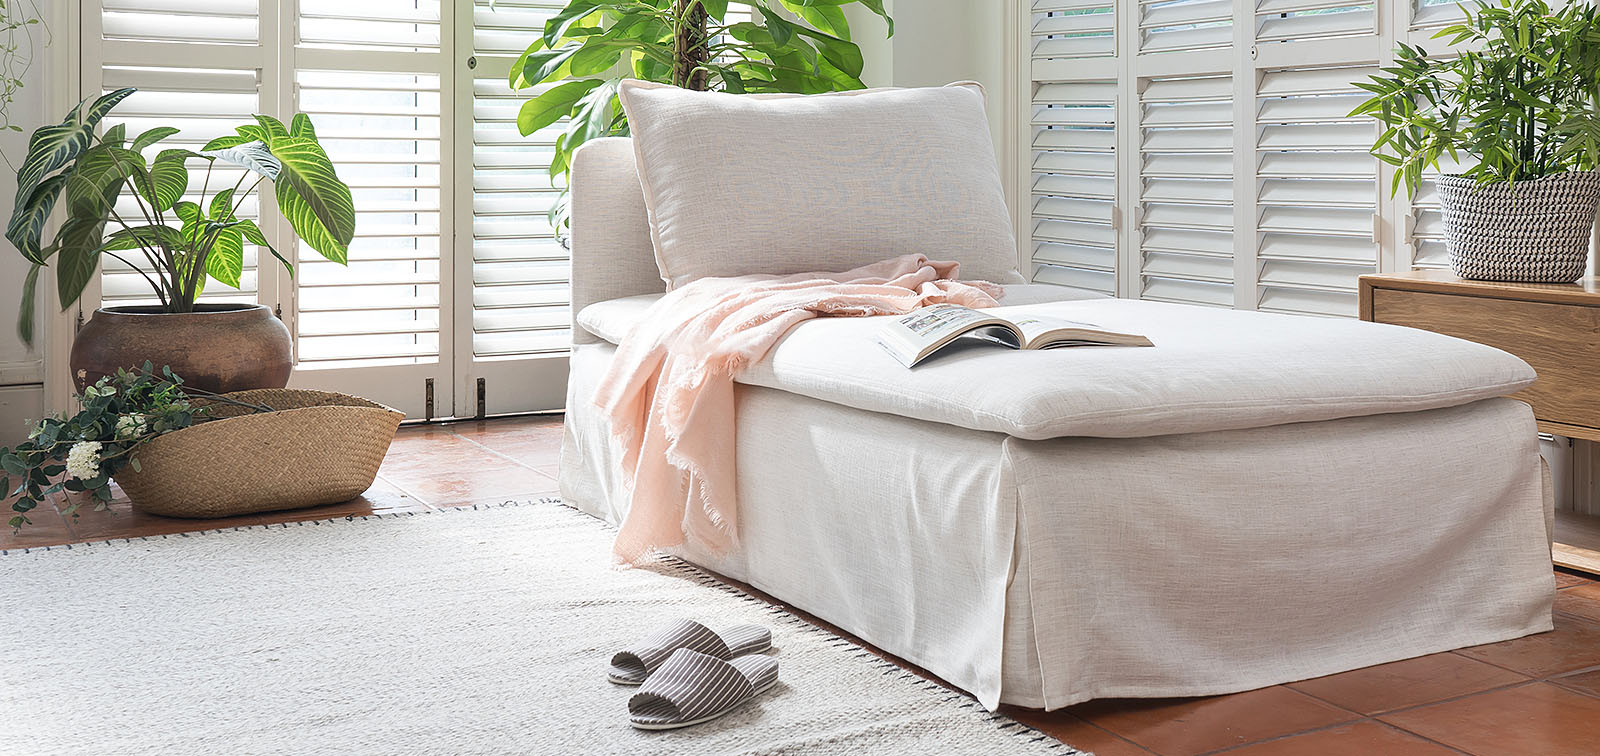 Luna Affordable Linen Custom Slipcovers Couch Covers